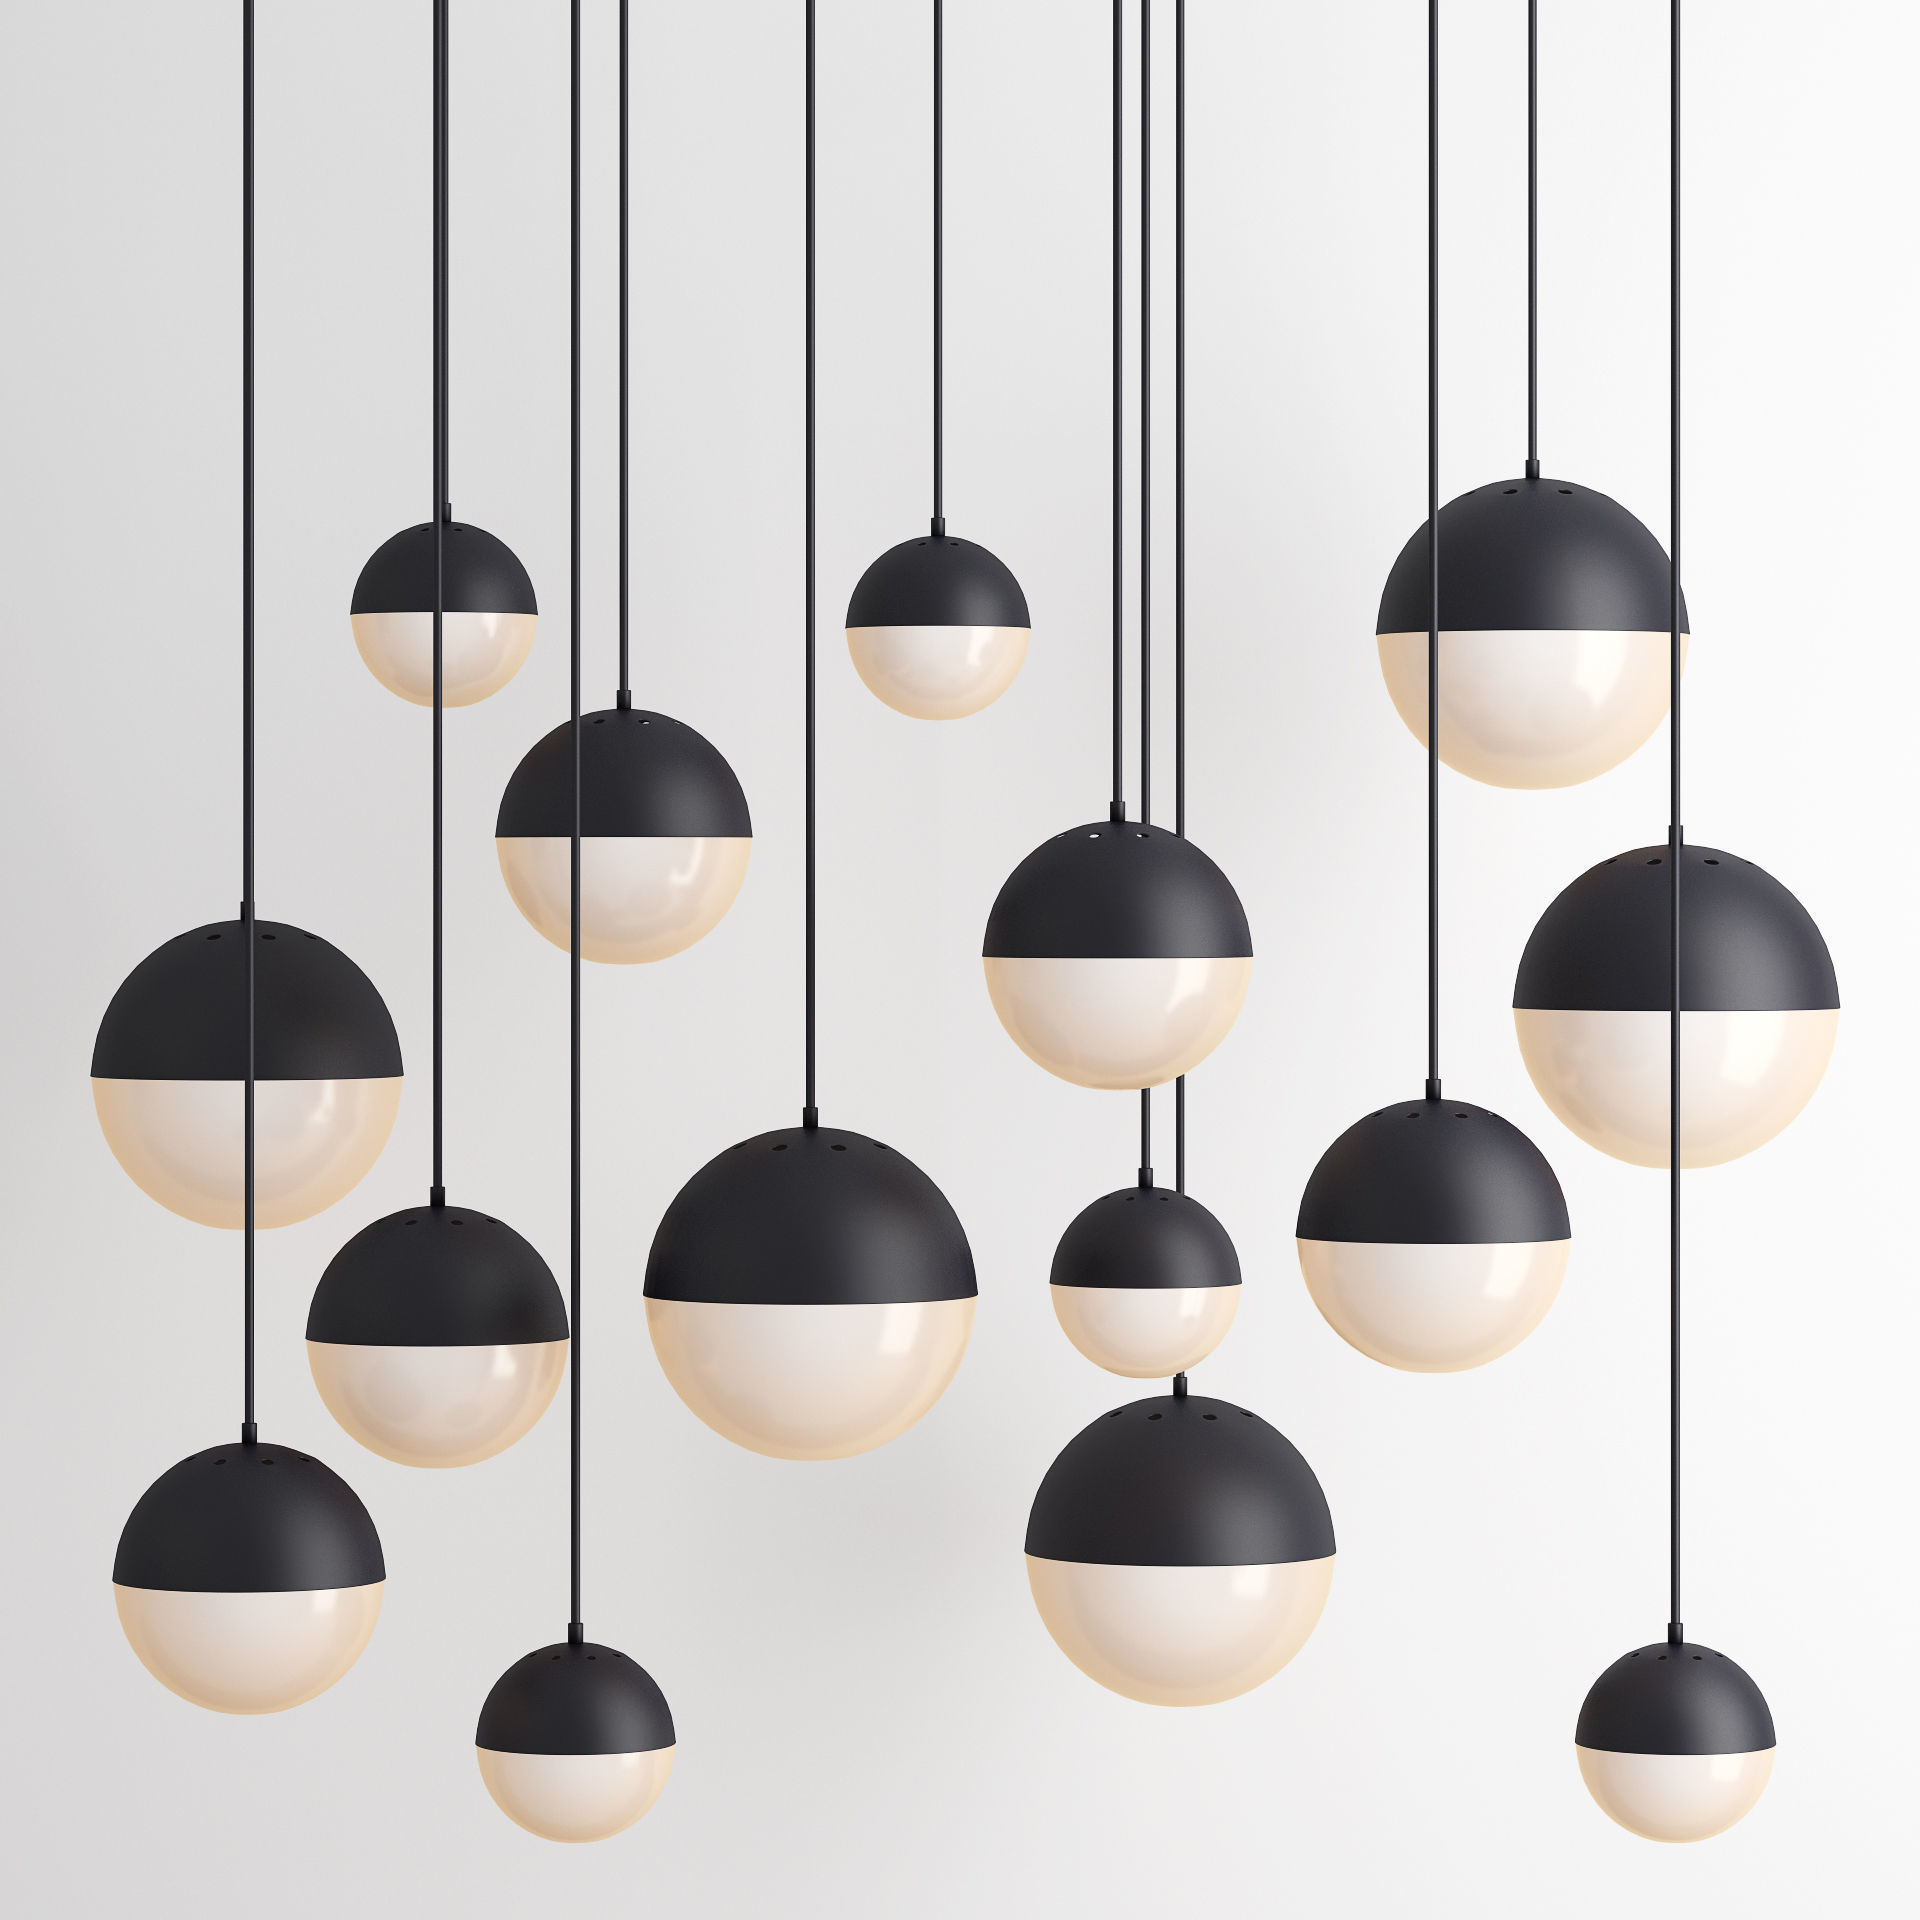 jodene item wood lights brown design products pendant light by black ashley number signature